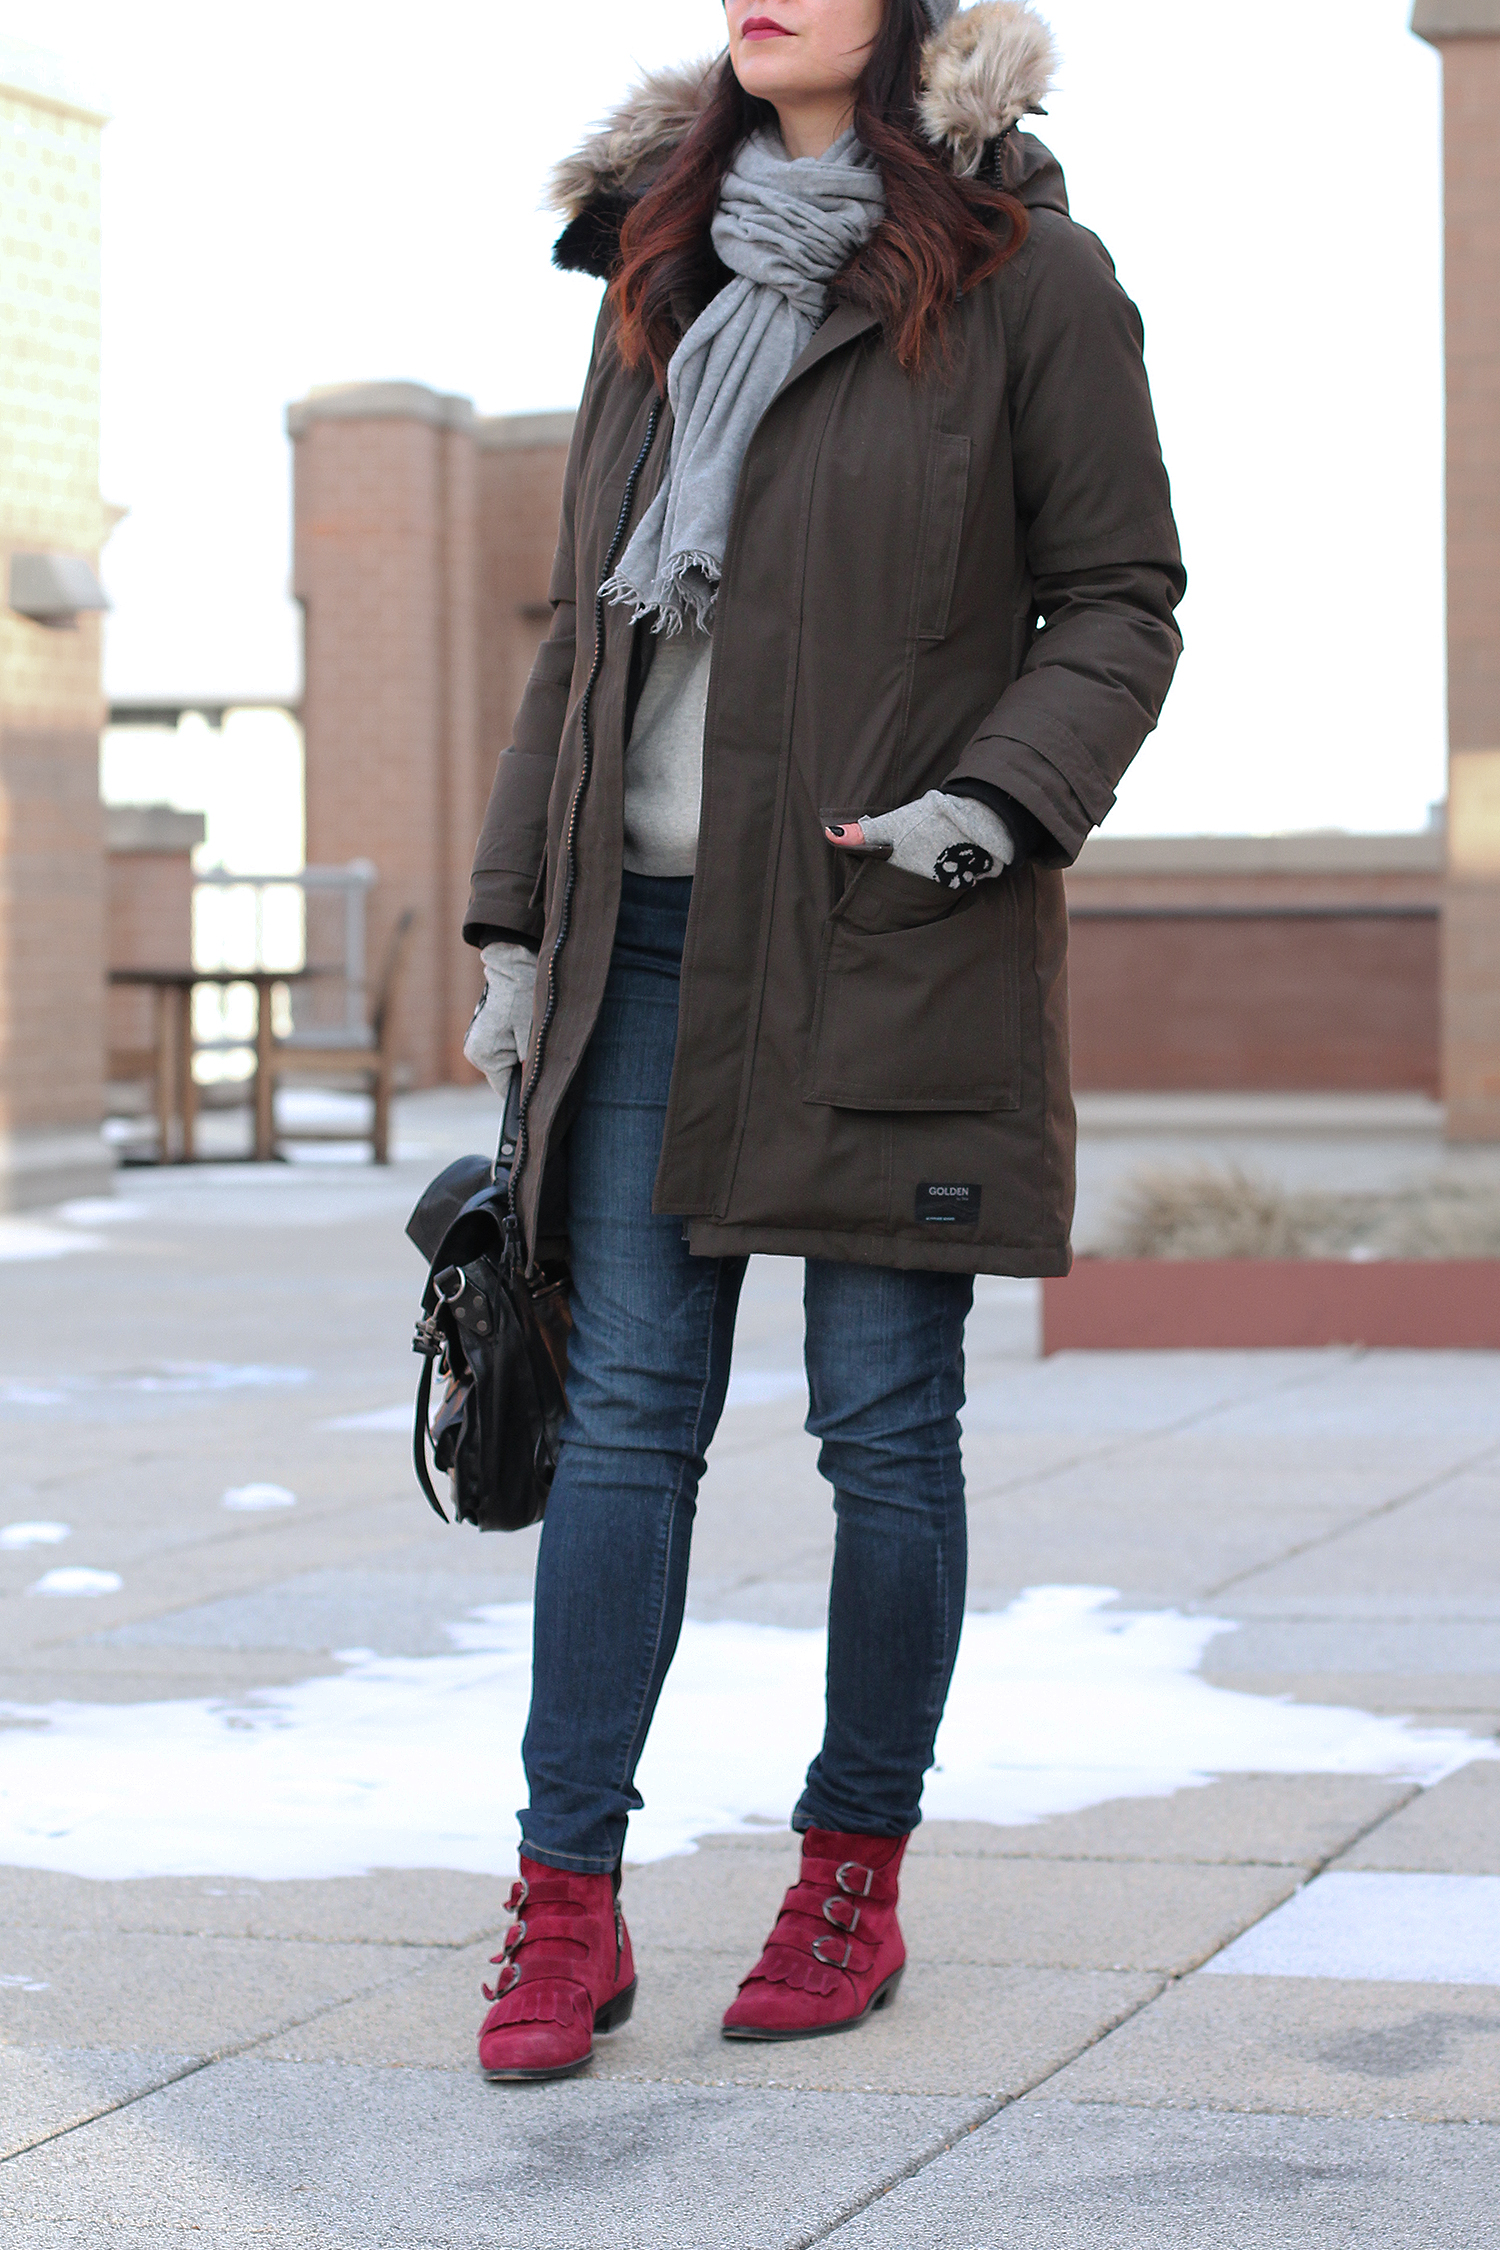 Cute Winter Oufit, Cold Weather Style, Parka Jacket for Women